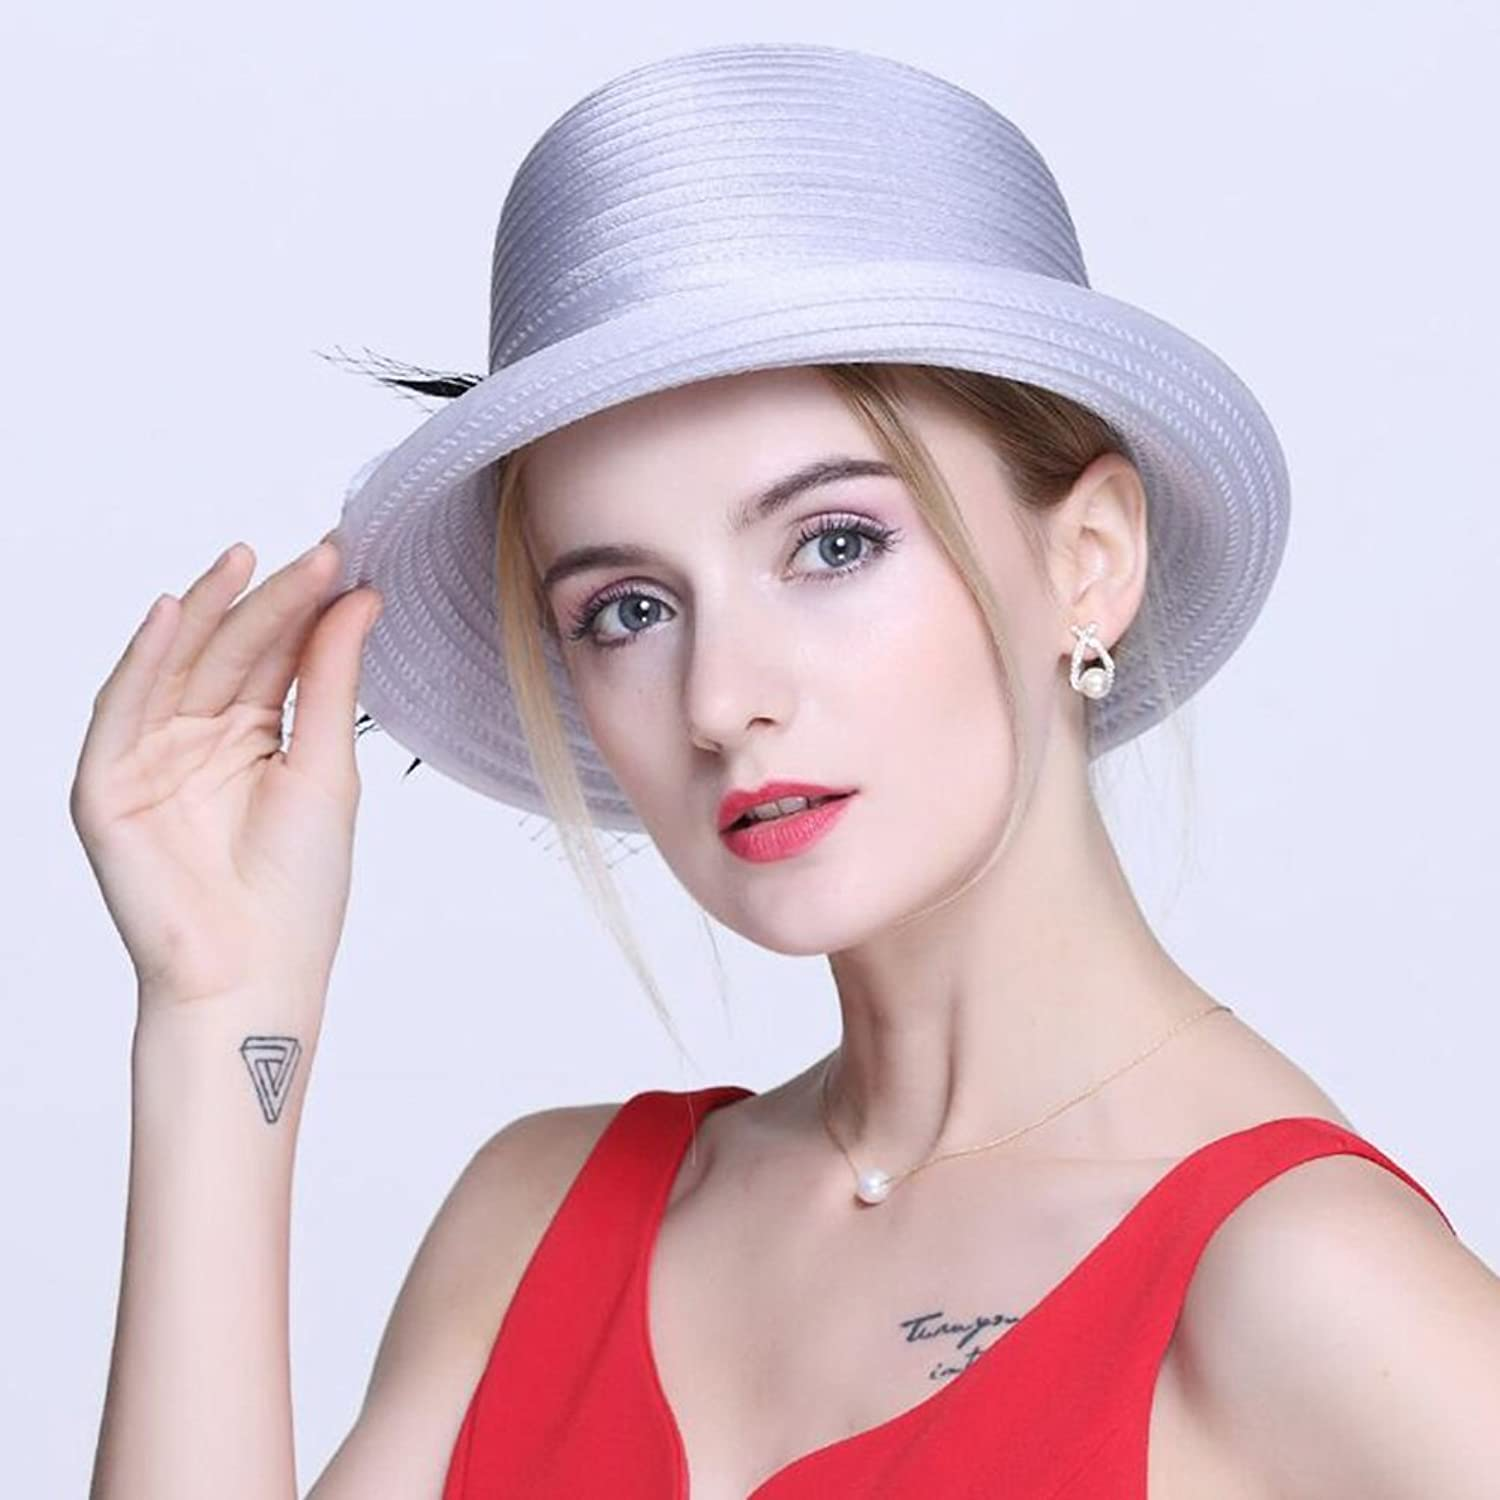 Sunny Ladies Hats Women's Summer Dome Small Bowler Shopping Visor Hat Travel Holiday (color   Light Grey)